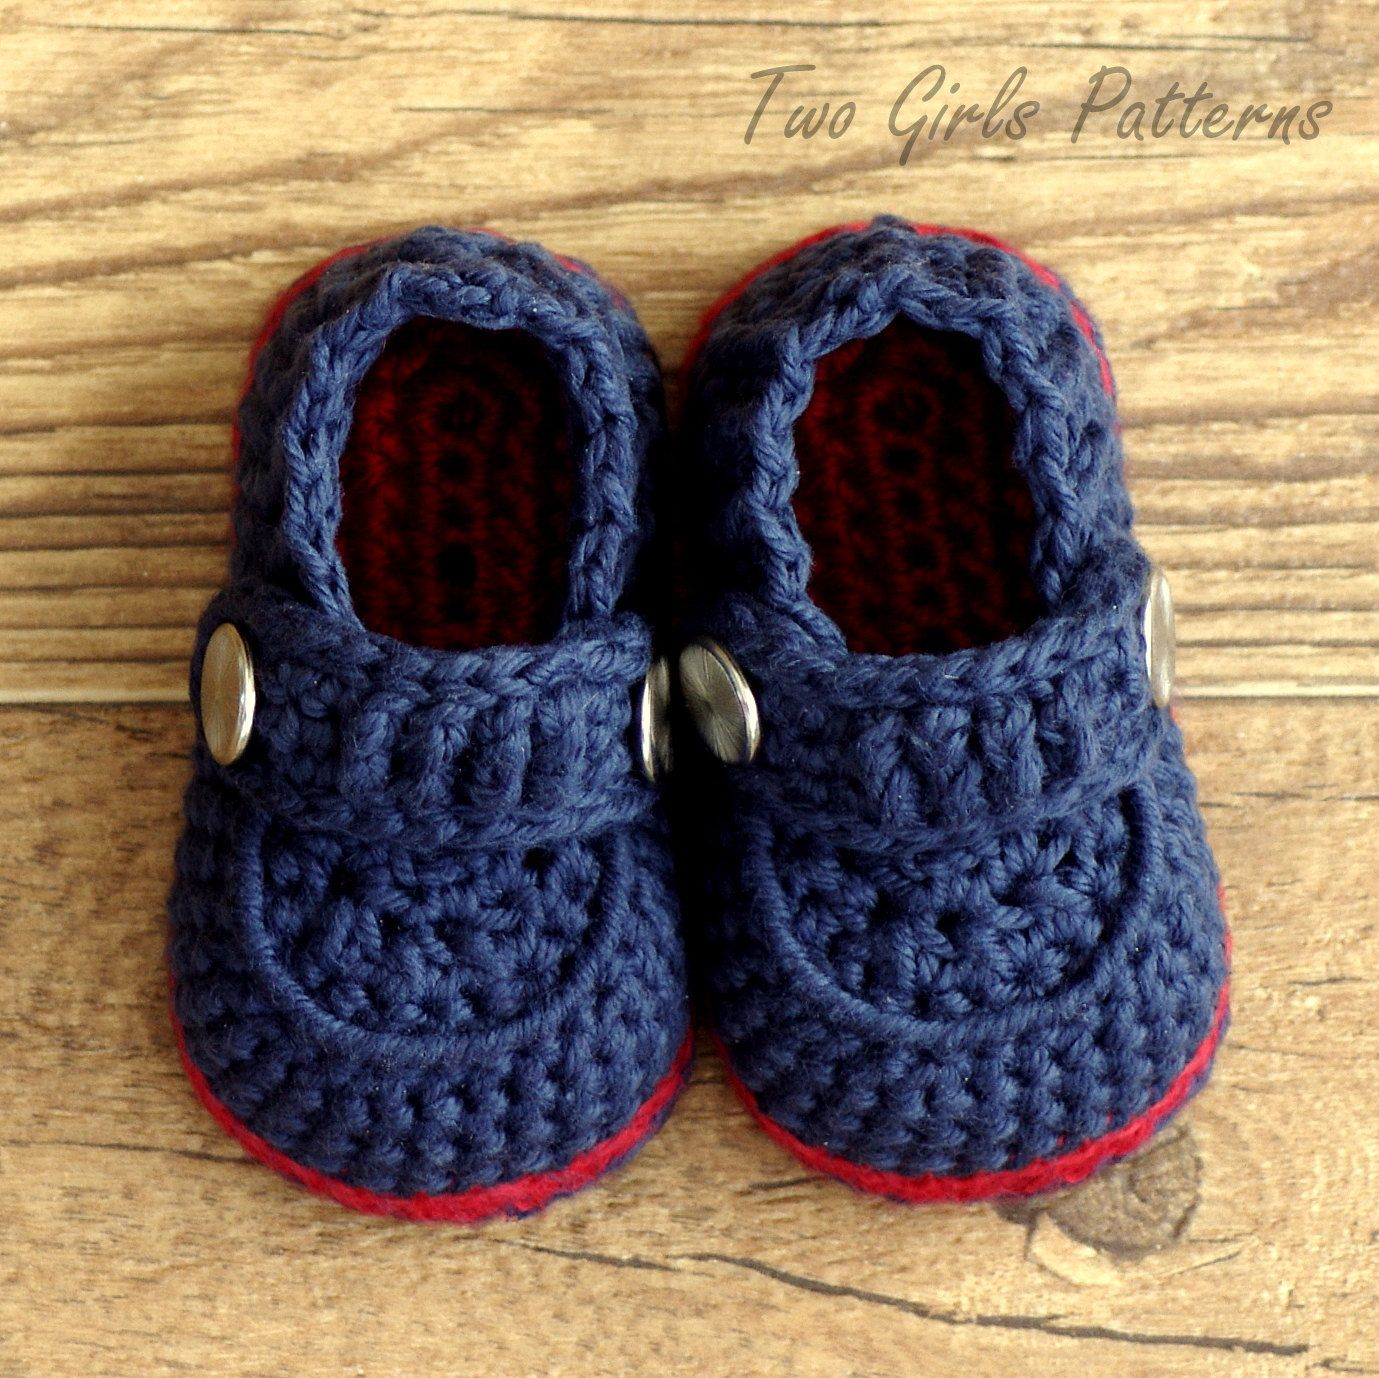 Crochet patterns baby boy boot the sailor by twogirlspatterns crochet patterns baby boy boot the sailor by twogirlspatterns 550 bankloansurffo Choice Image